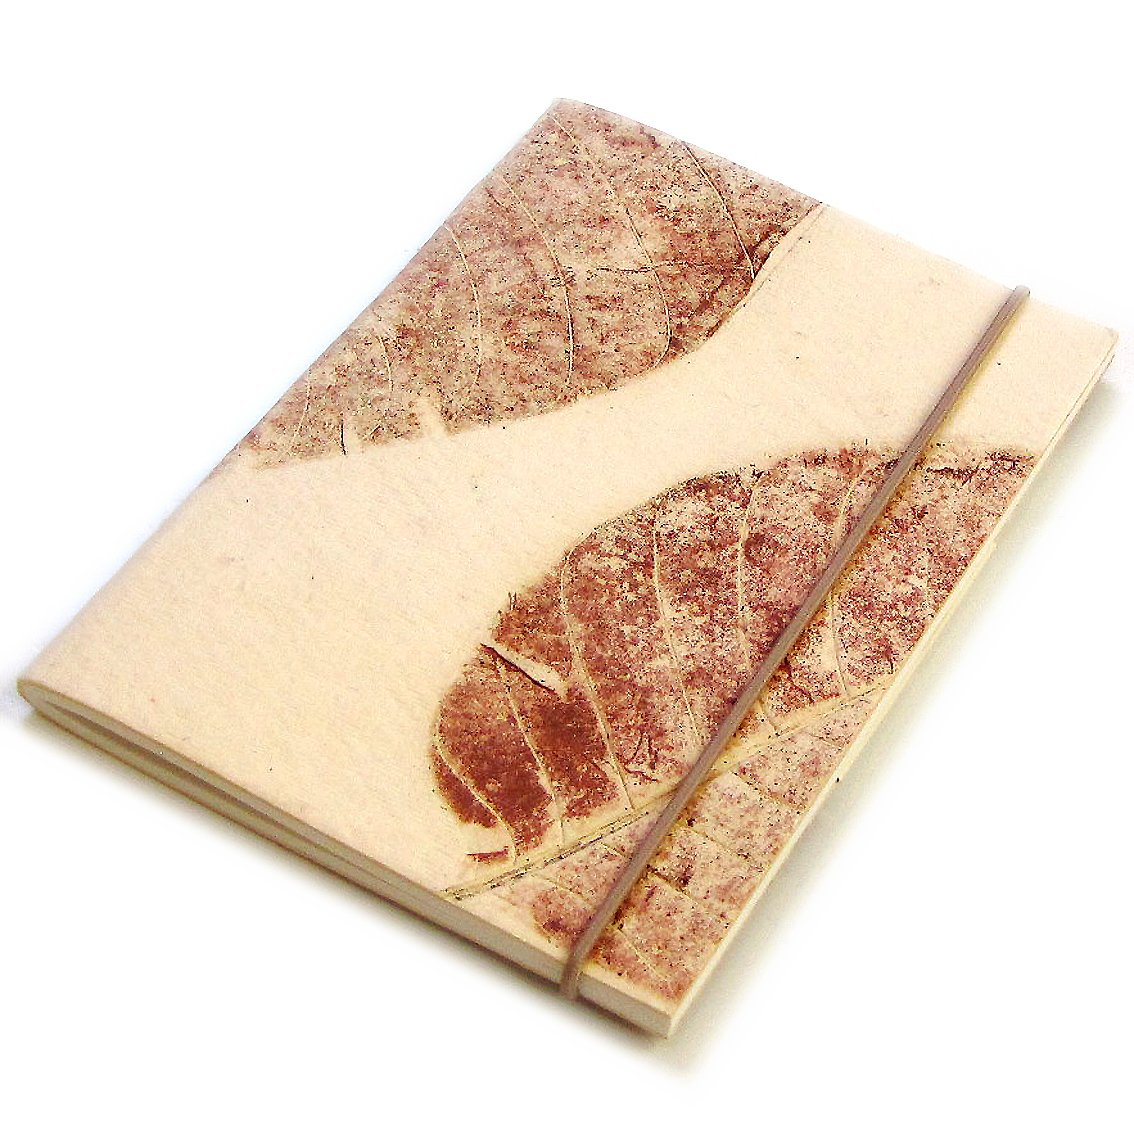 Handcrafted journal blank notebook cream handmade large leaf paper sketching 5x7 40pp